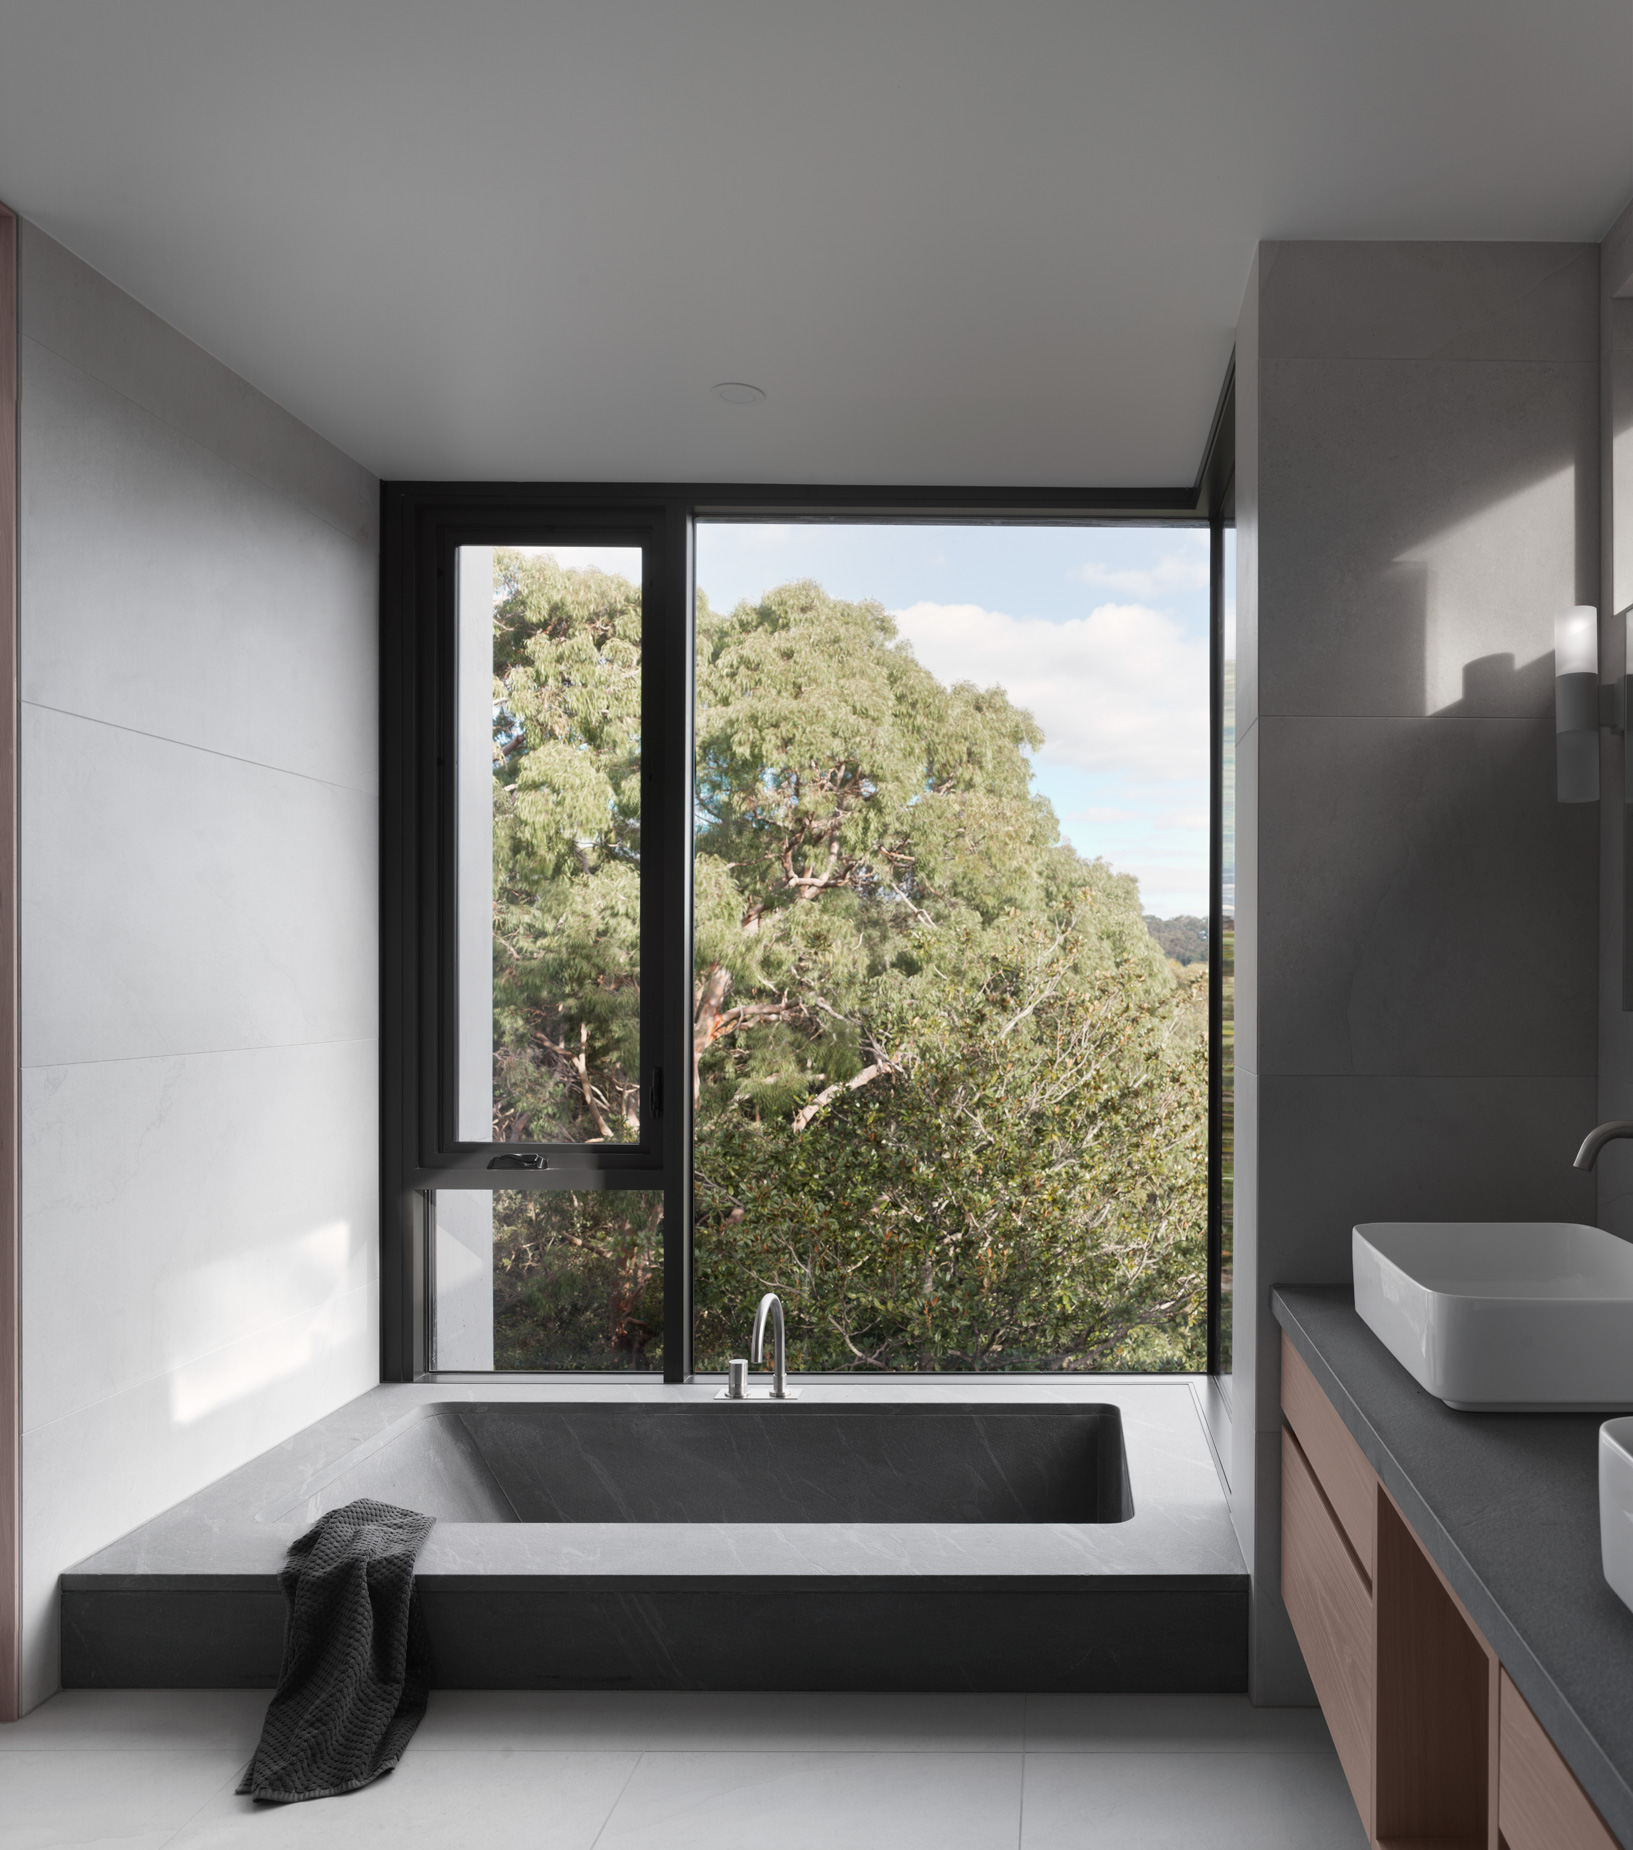 luke-butterly-2020-Cove-Cove-House-by-Dieppe-Design-Architecture-Sydney-NSW-15